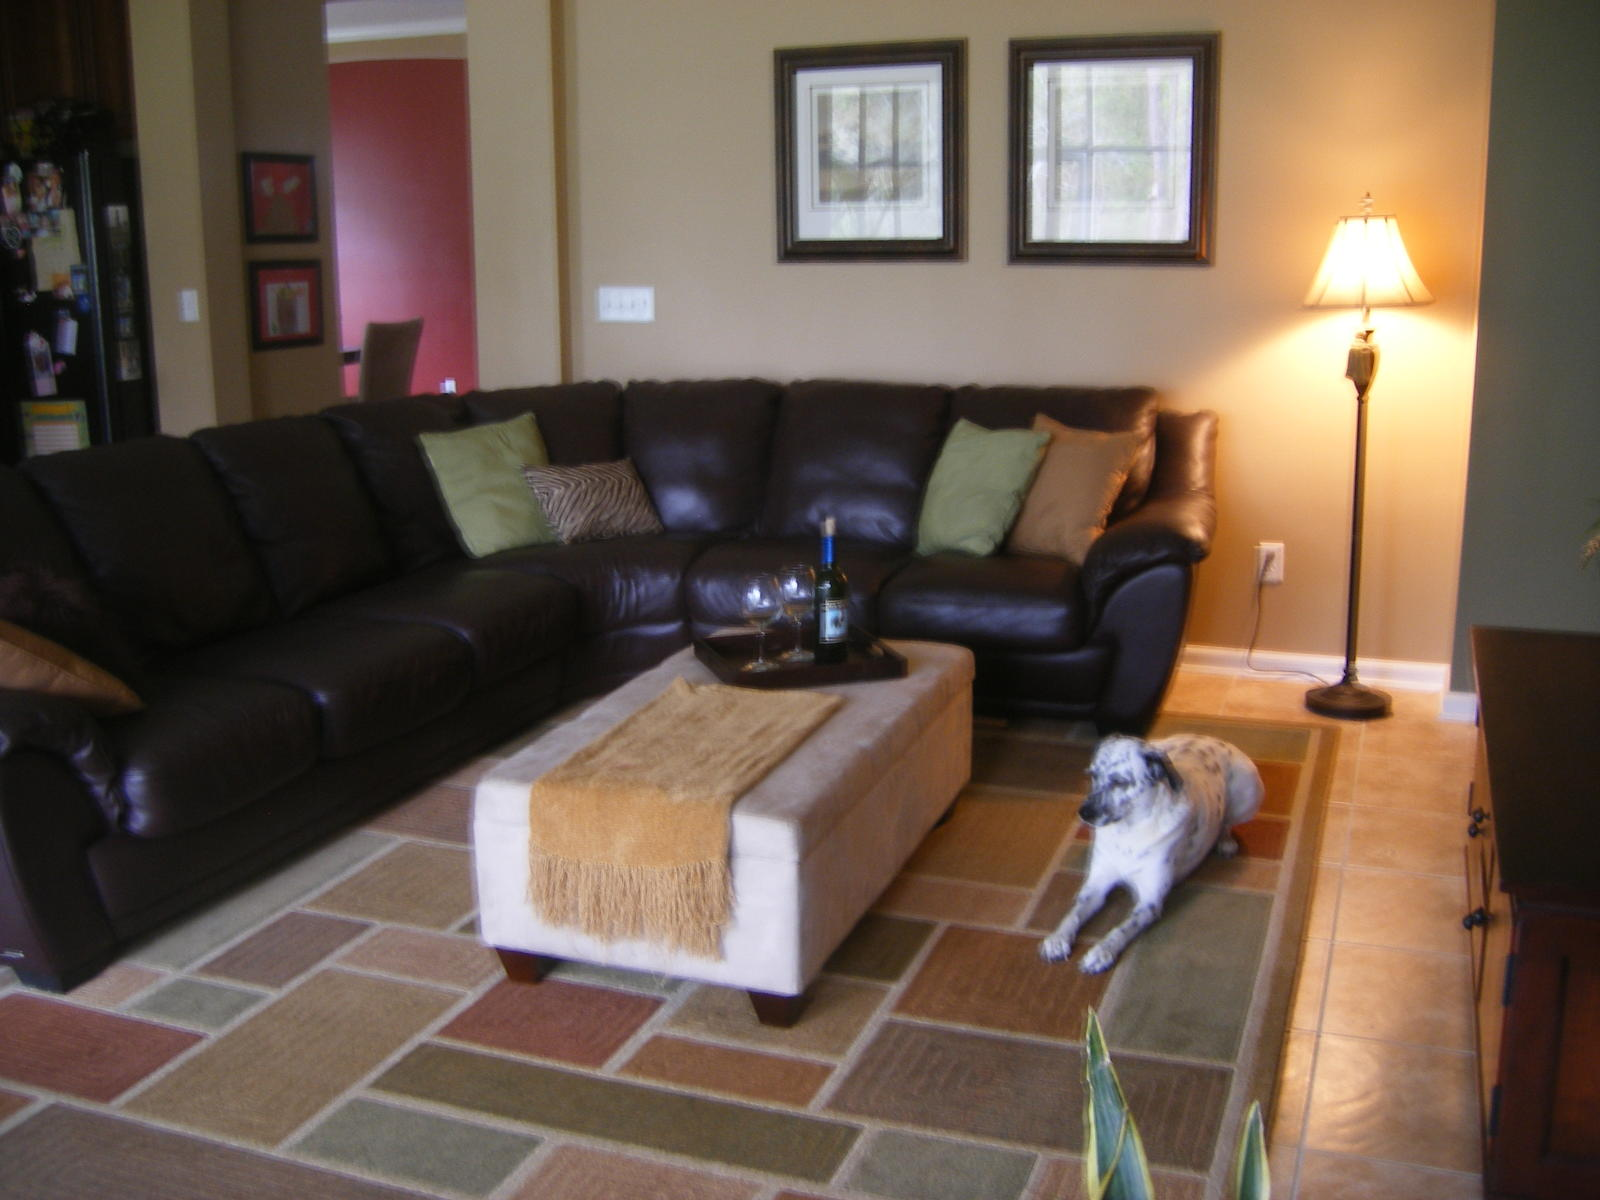 Decorating Ideas with Brown Leather Couches-www.city-data.com